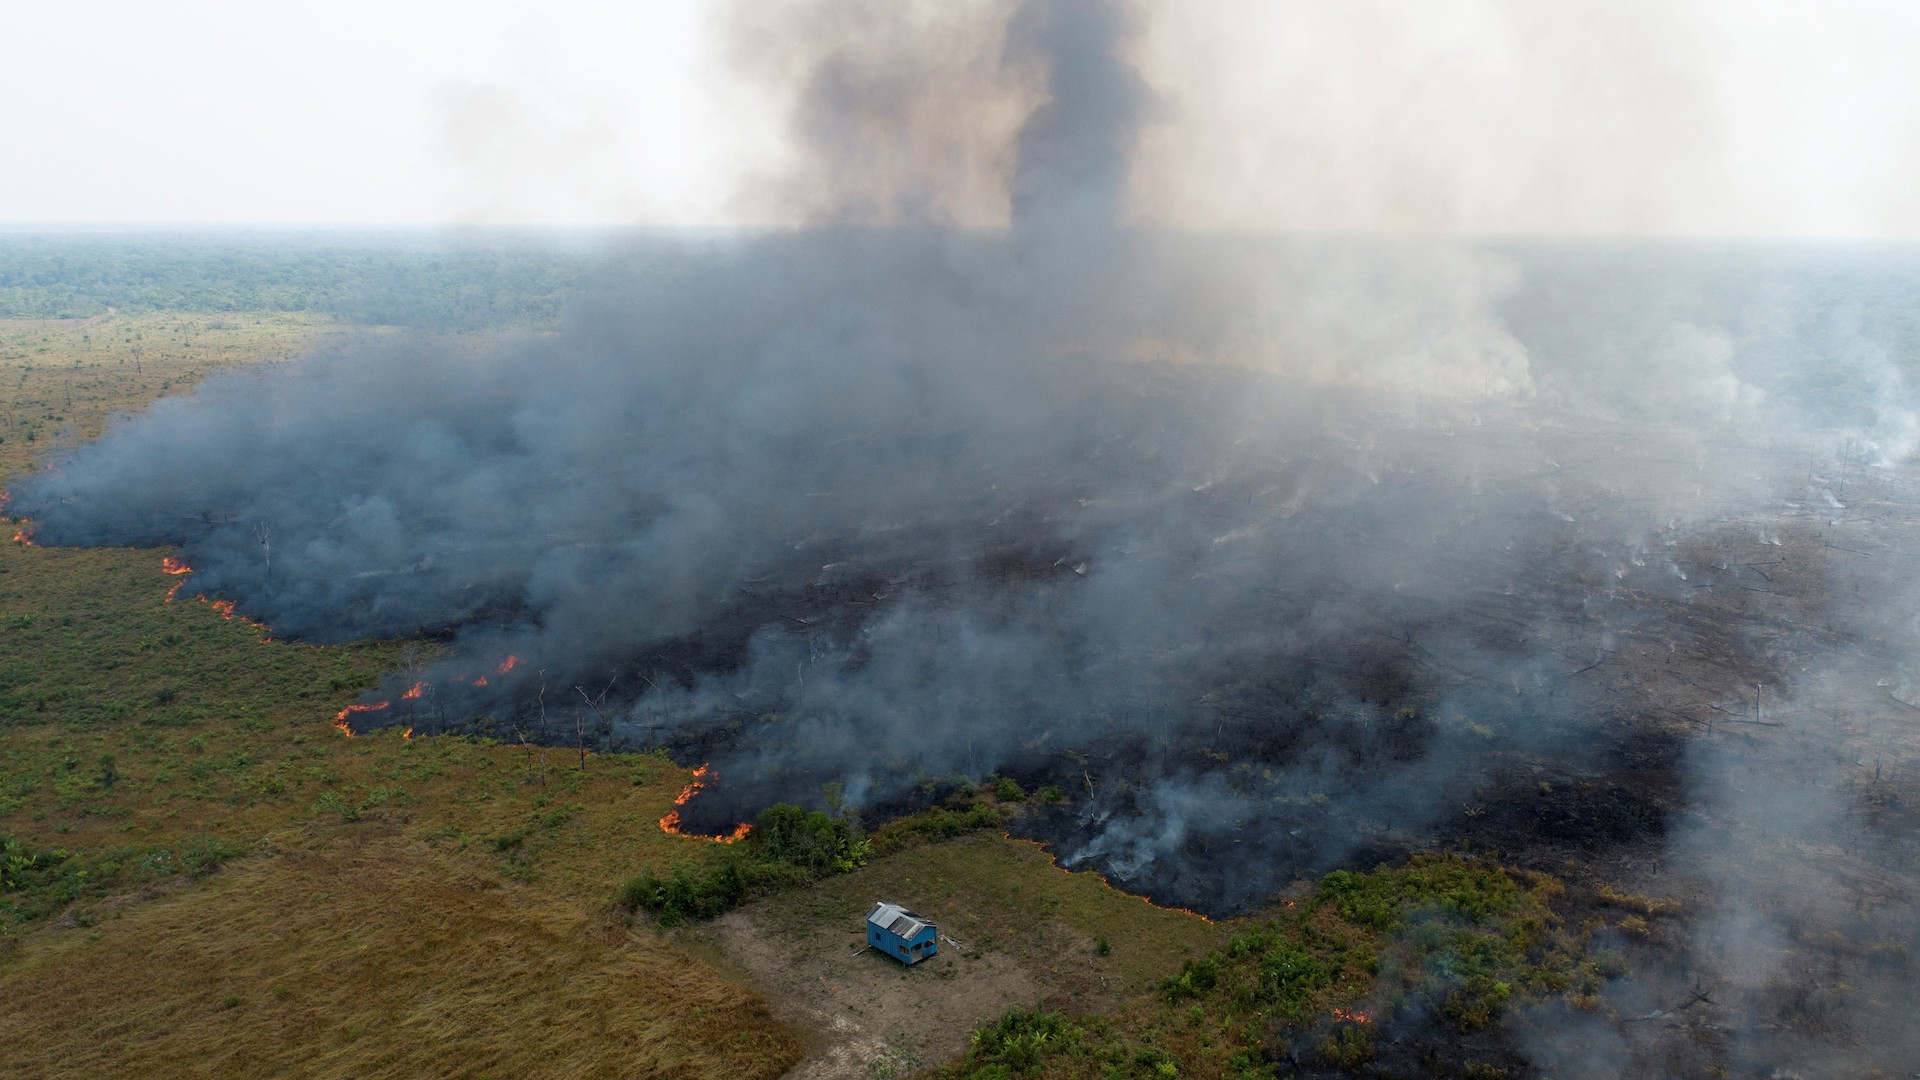 Instagram Scammers Are Using The Fires In The Amazon To Rip People Off